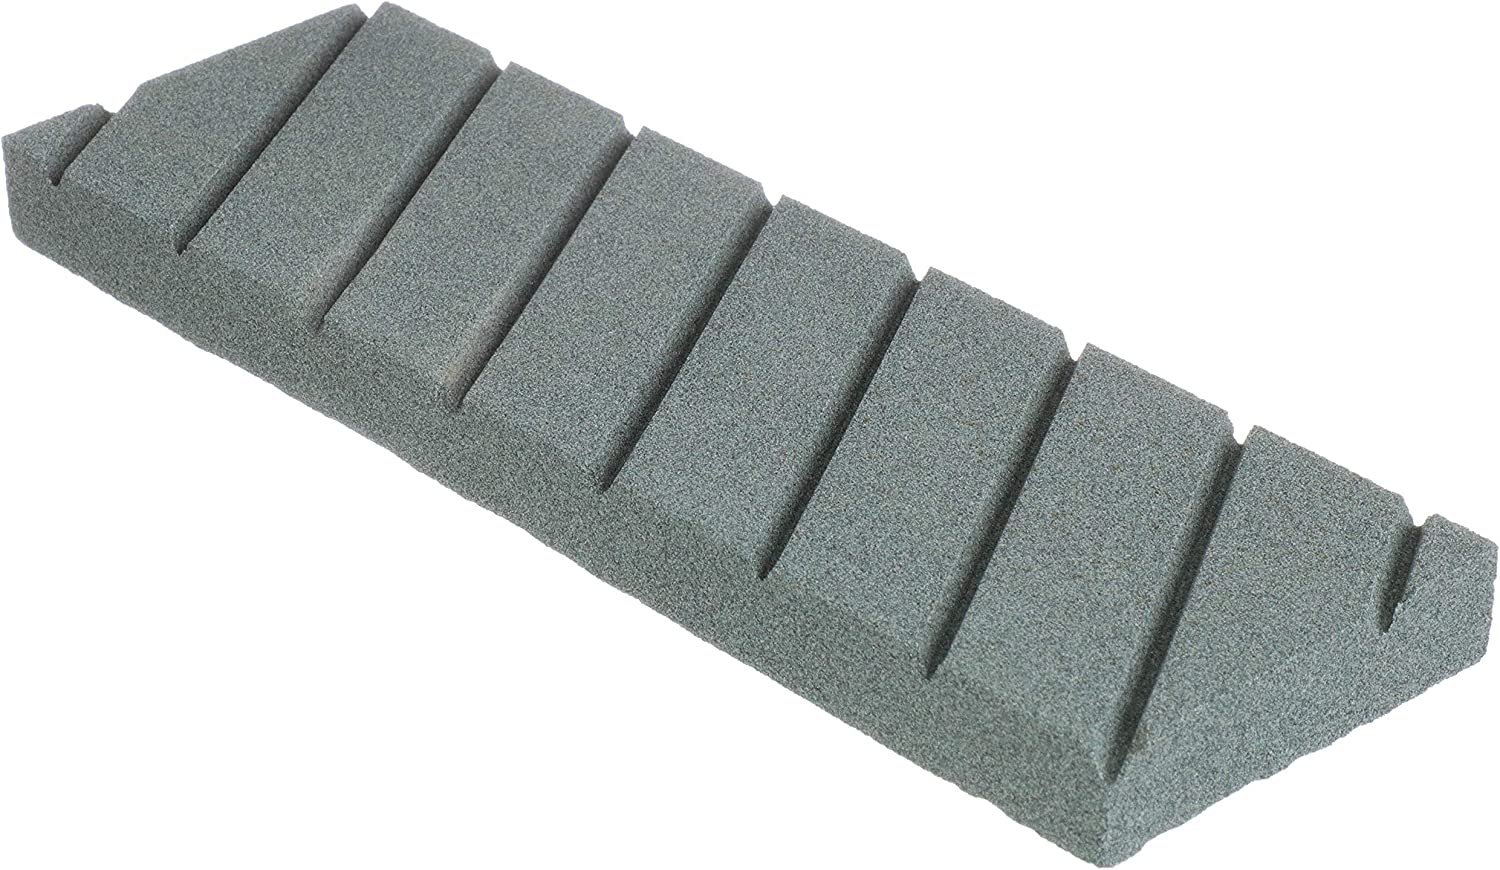 Set of 2 Superbly Flat With Hard Bond Coarse Grit Silicon Carbide Abrasive Norton Flattening 9 x 3 x 3//4 69936687444 Norton Flattening Stone With Diagonal Grooves For Waterstones Plastic Case